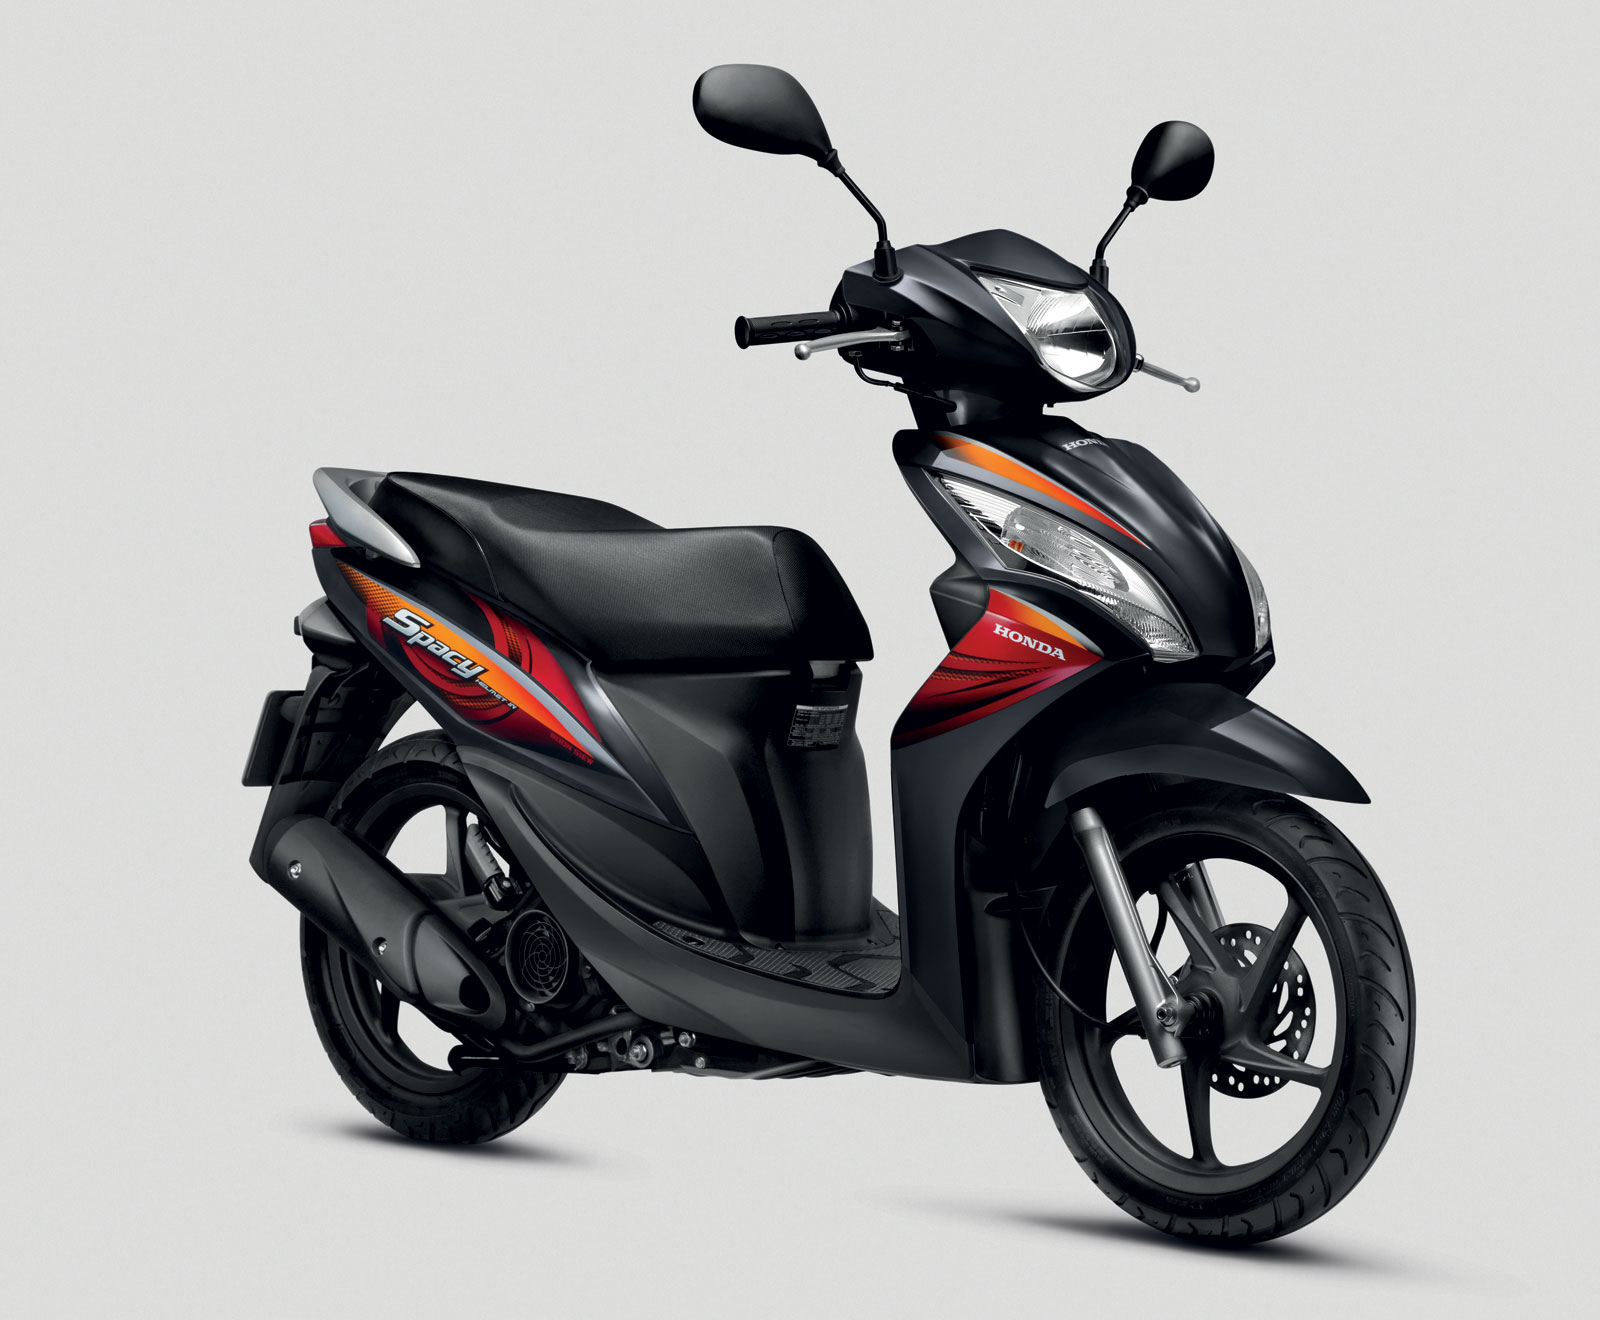 Honda Spacy and PCX bikes launched by Boon Siew Paul Tan - Image 139134